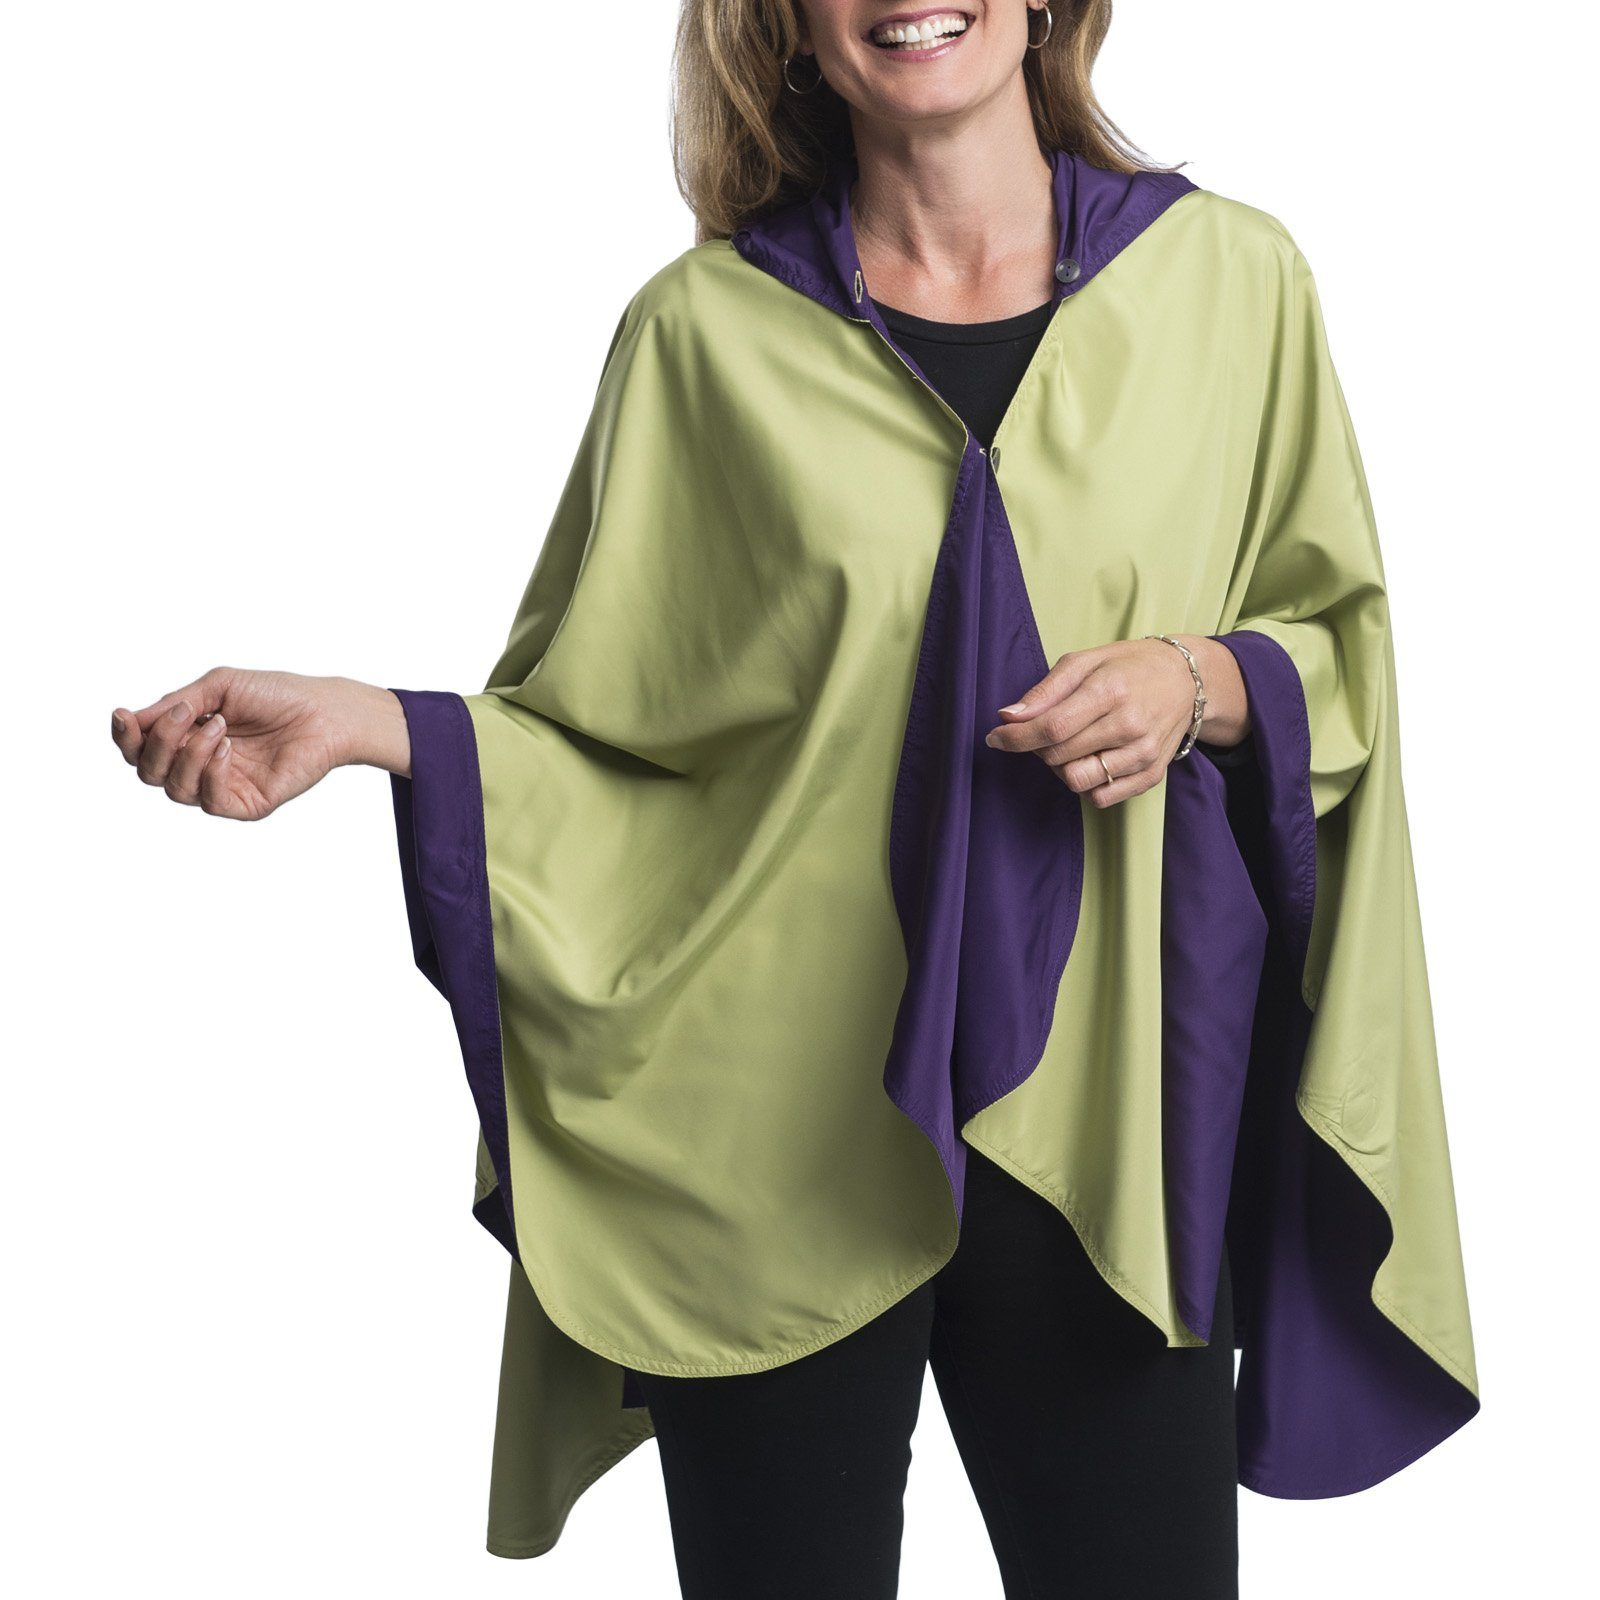 RainCaper Eggplant & Kiwi Travel Cape & Womens Rain Coat